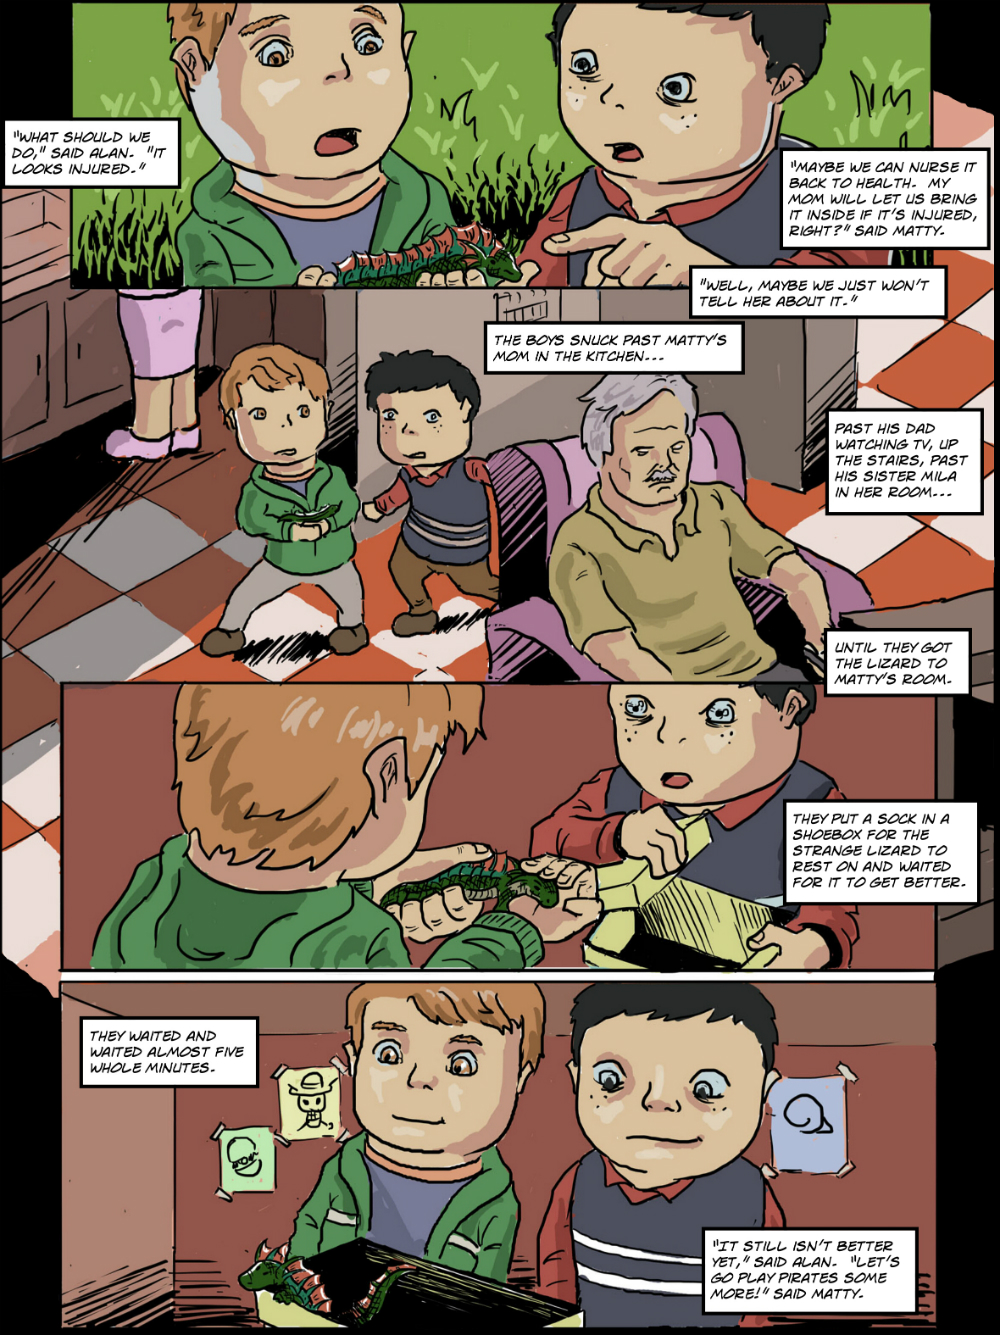 BASILISK IN THE HOUSE page 2 - story 18 in The Book of Lies